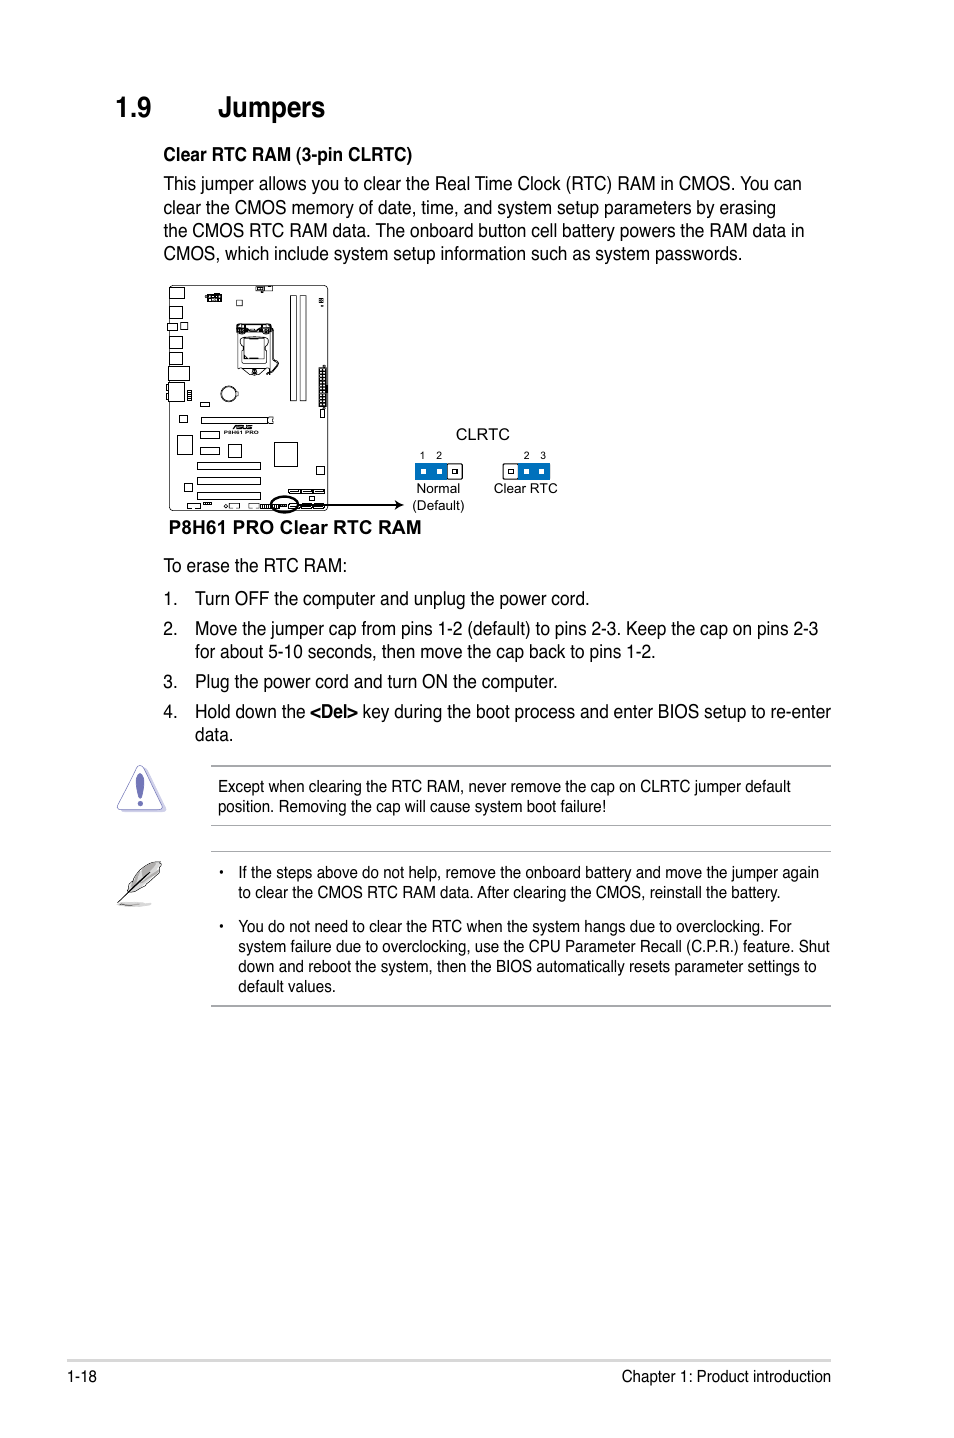 9 jumpers, Jumpers -18 | Asus P8H61 PRO User Manual | Page